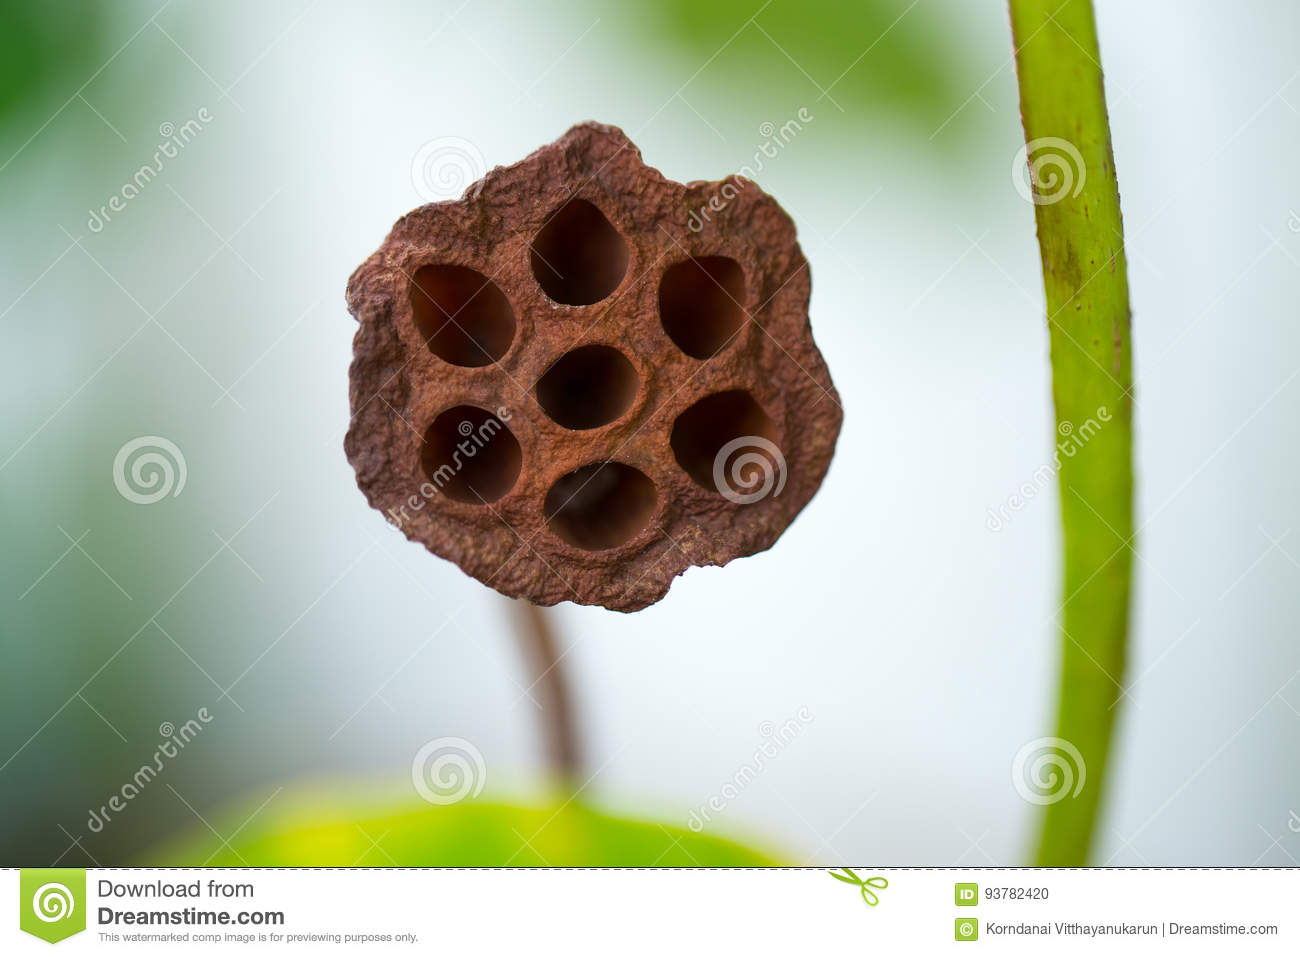 Hole of dried lotus seed for medical image test Trypophobia phobia.